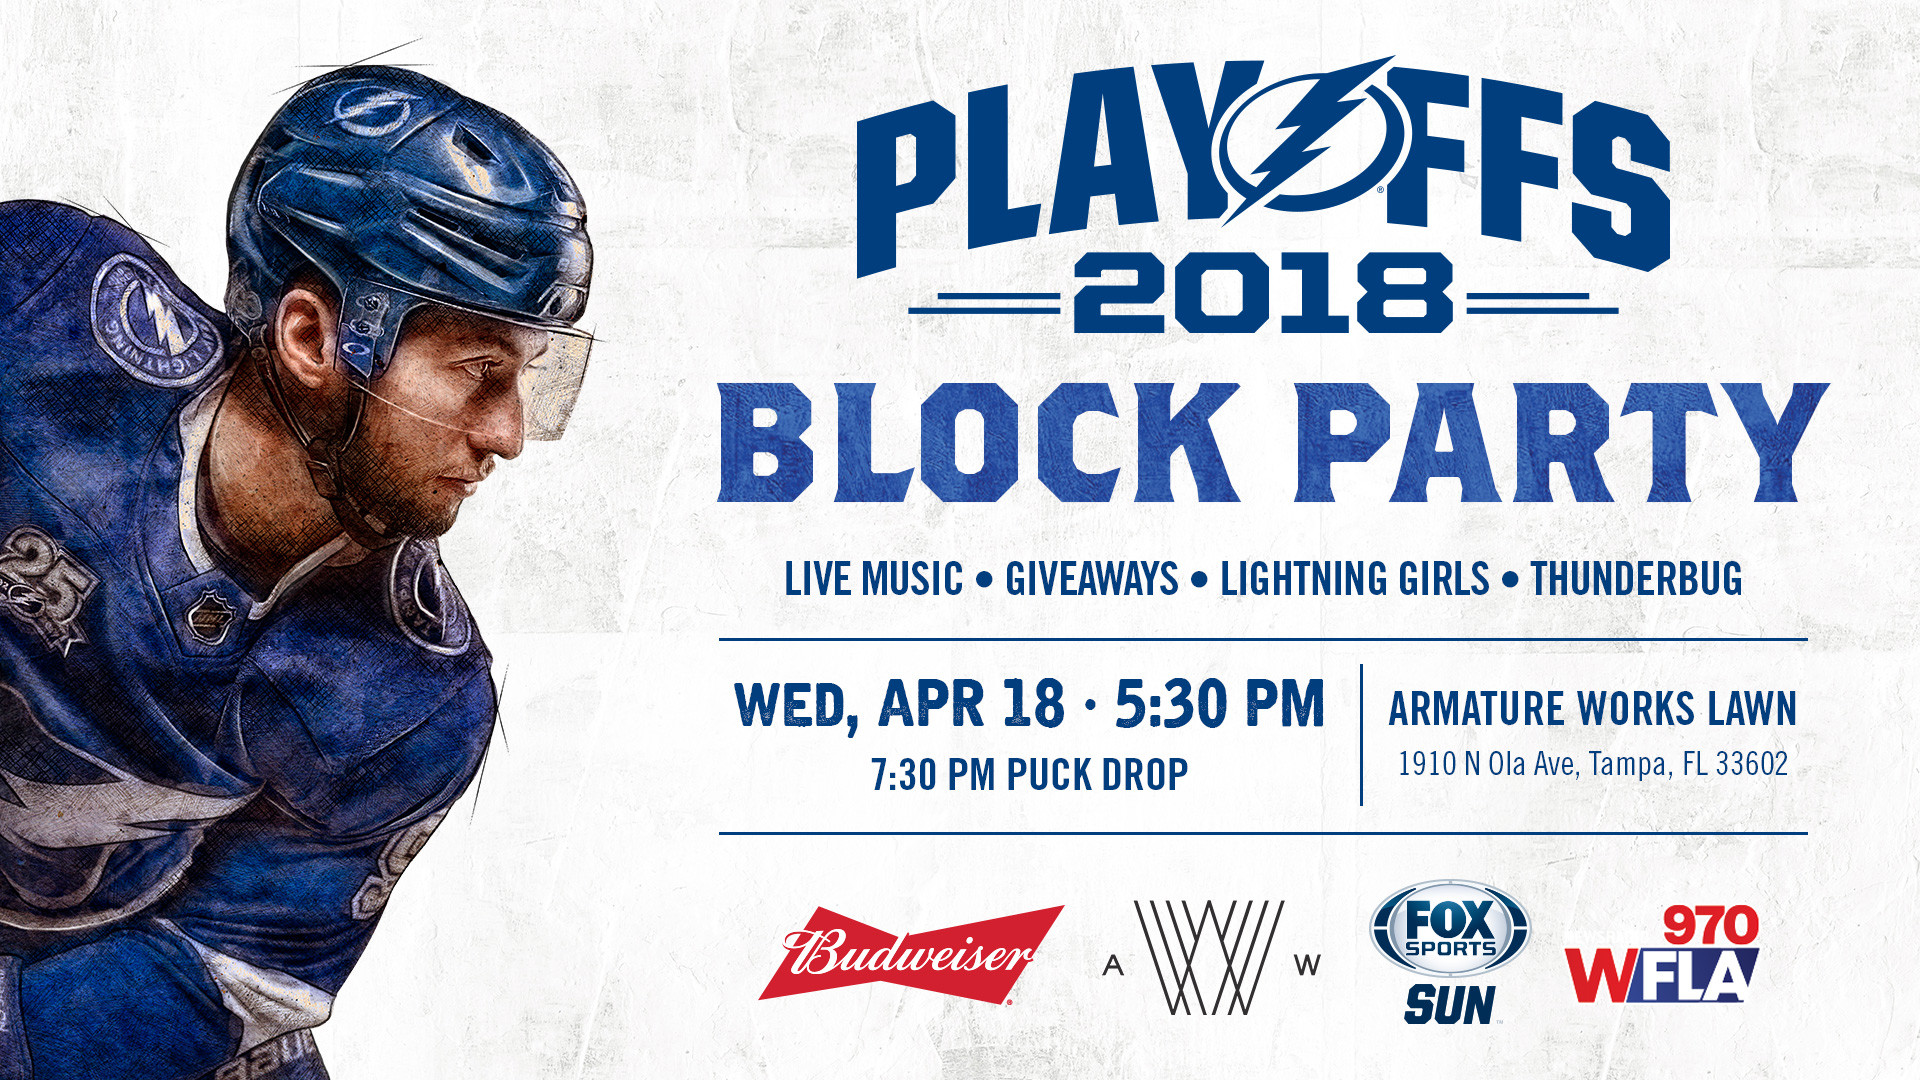 1920x1080 Join us for a Block Party on the Armature Works Lawn as the Tampa Bay  Lightning battle the New Jersey Devils in the first round of the NHL  Playoffs.